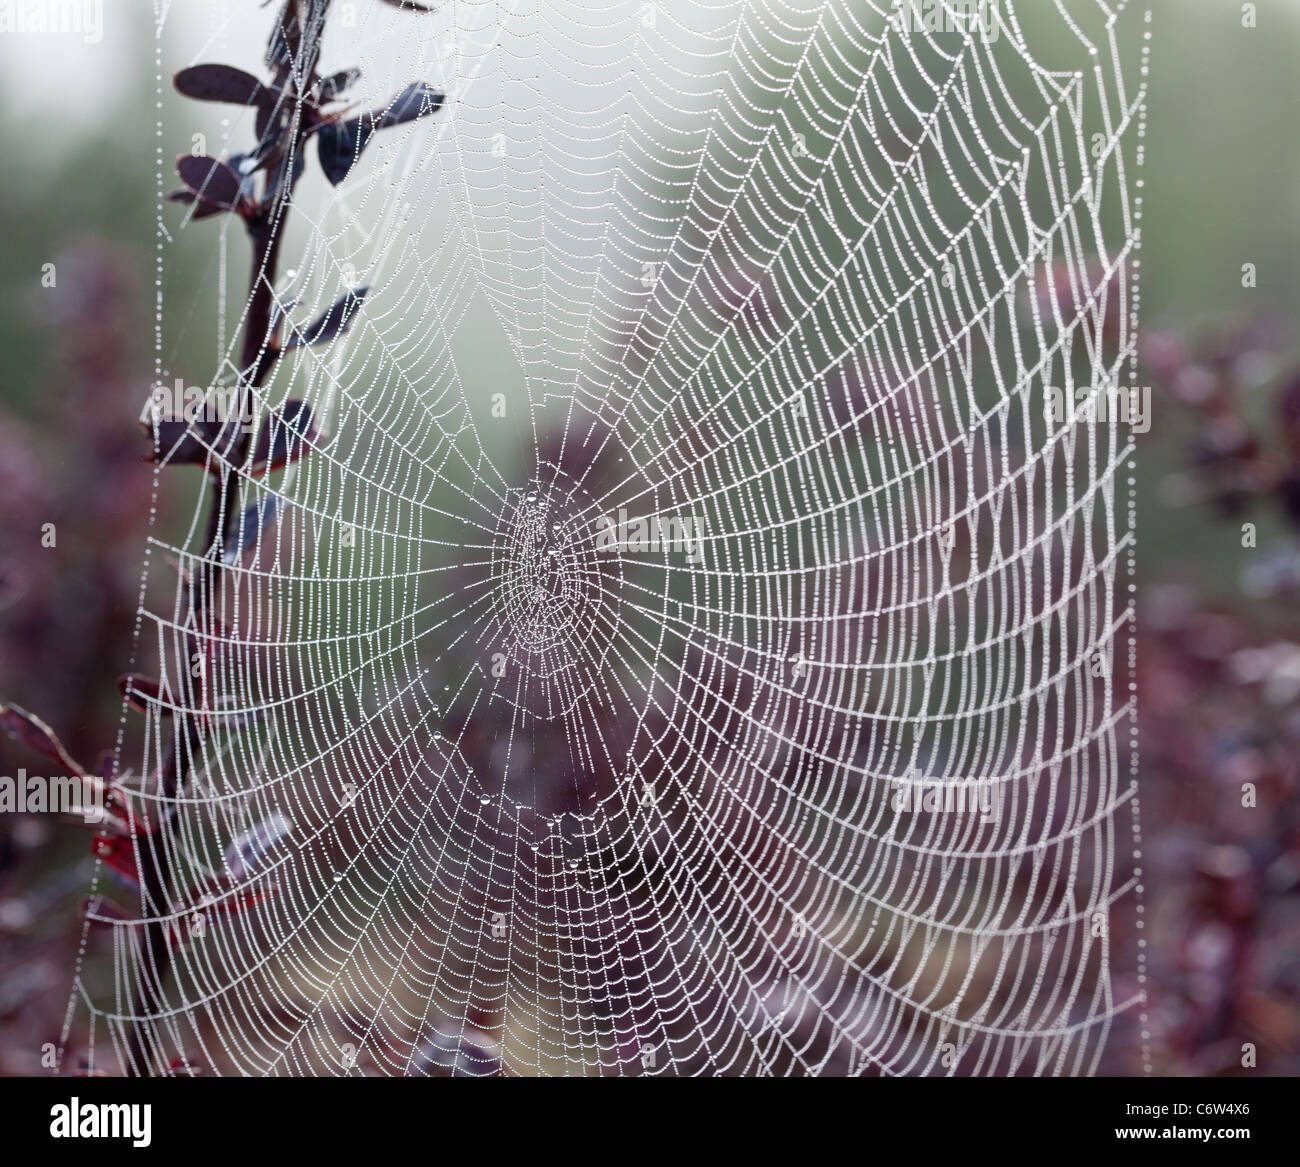 Dew drops on the strands of a spider web - Stock Image